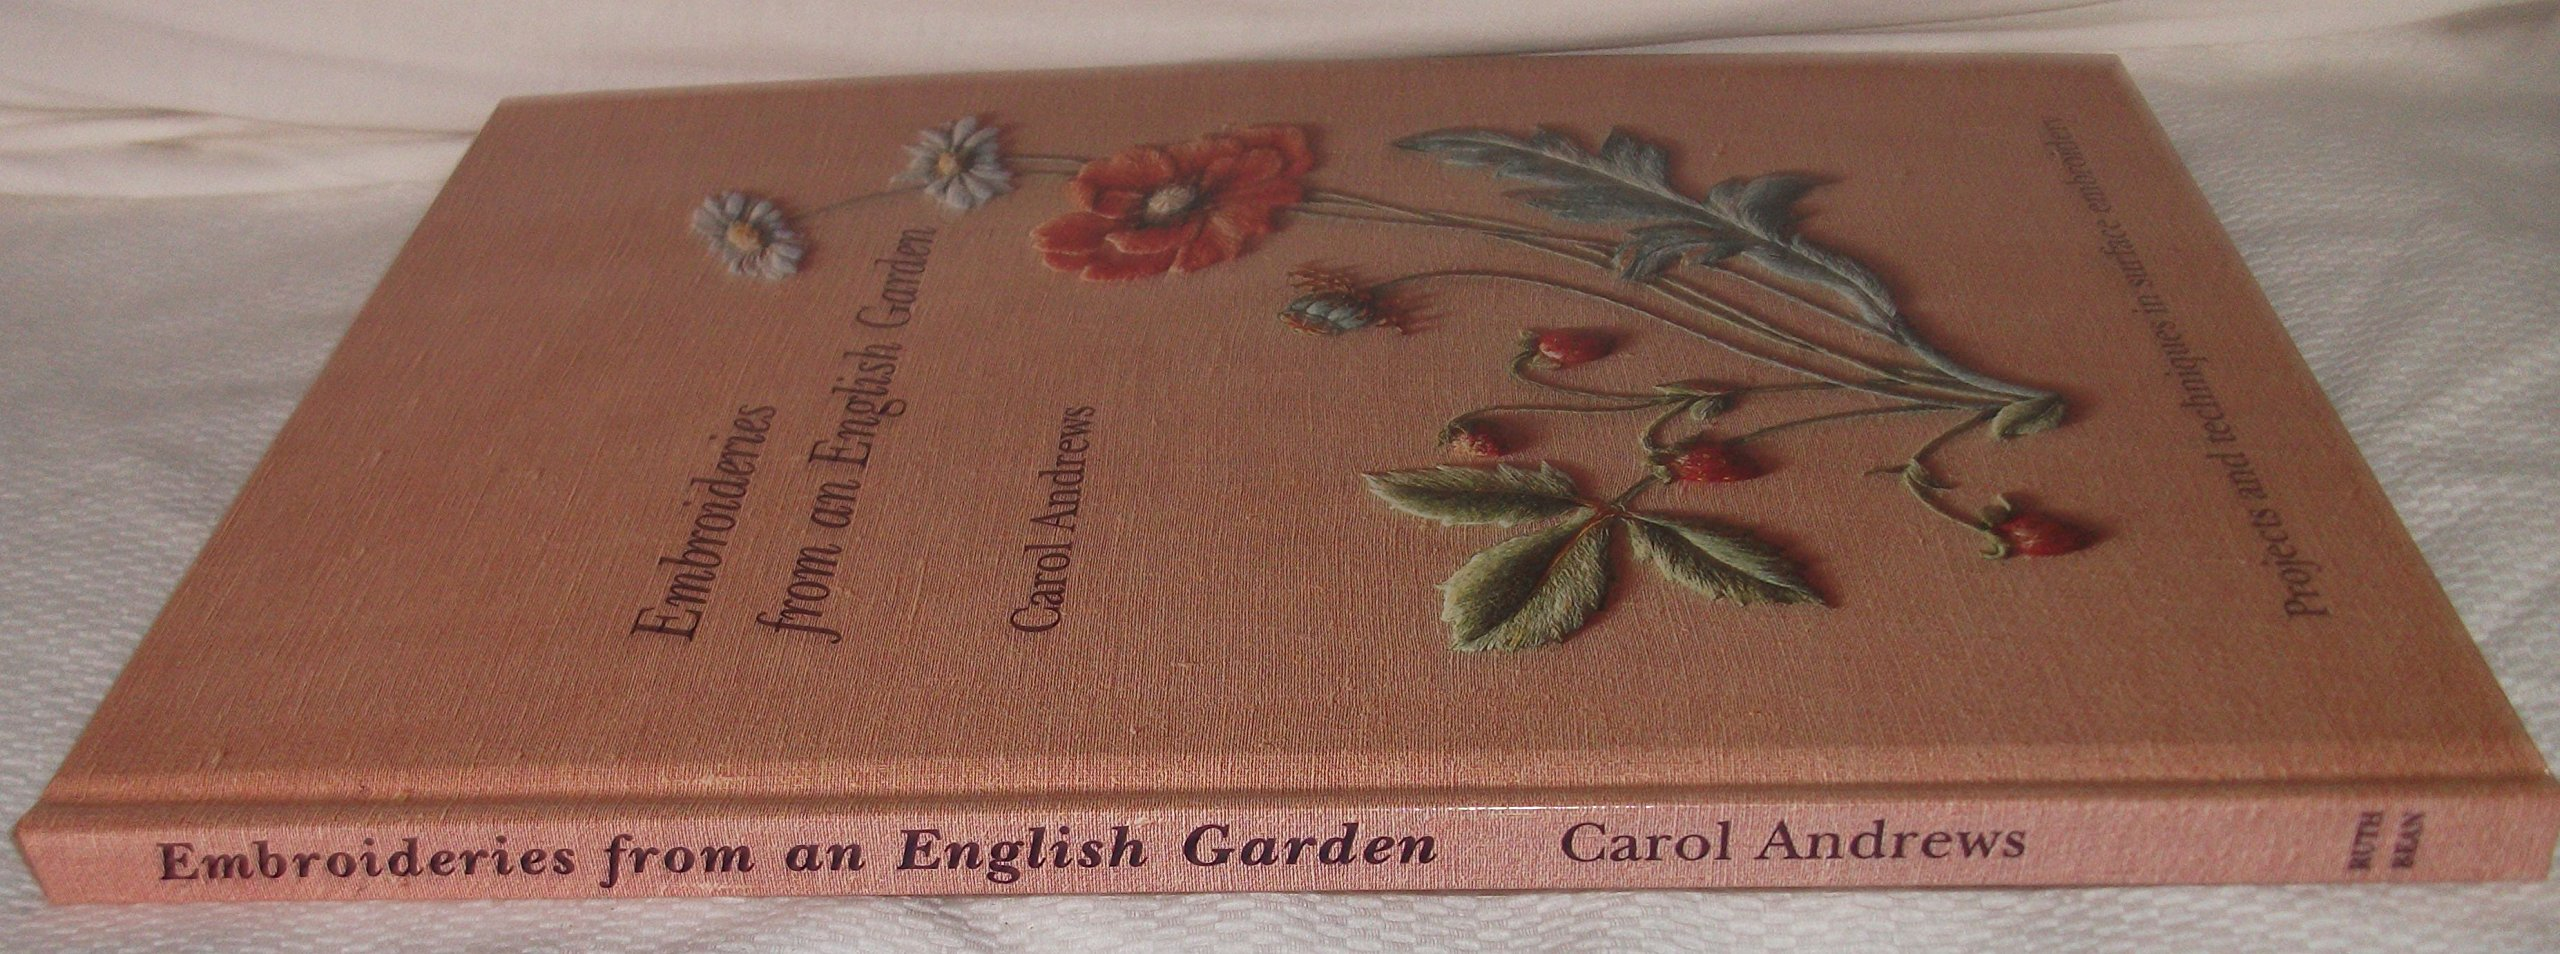 Embroideries from an English Garden: Projects and Techniques in Surface Embroidery: Amazon.es: Carol Andrews, Ruth Bean, Nigel Bean: Libros en idiomas ...